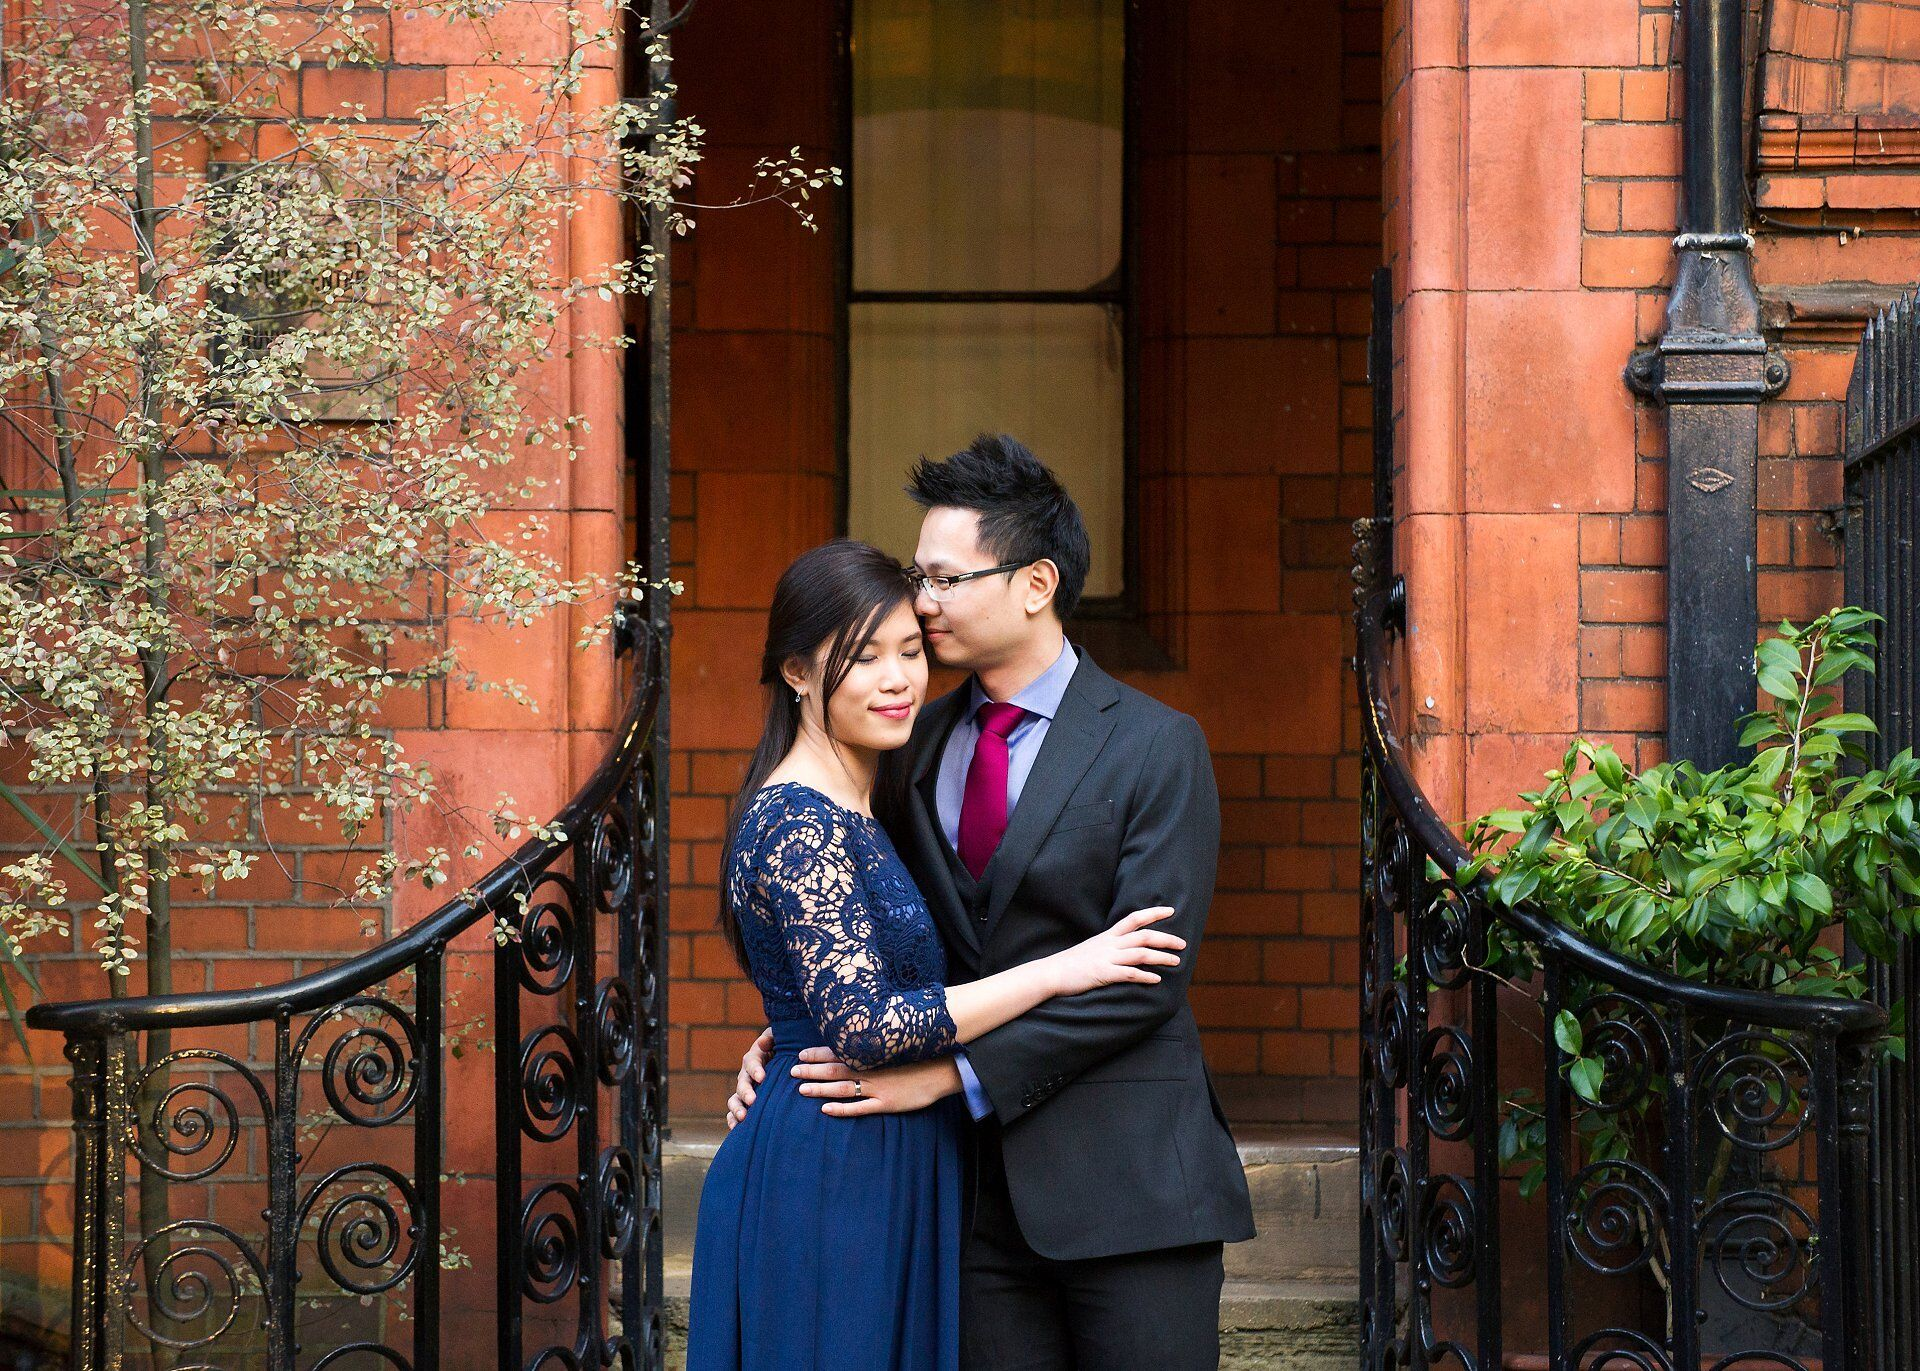 mayfair library wedding photographer captures a quiet moment just after the wedding